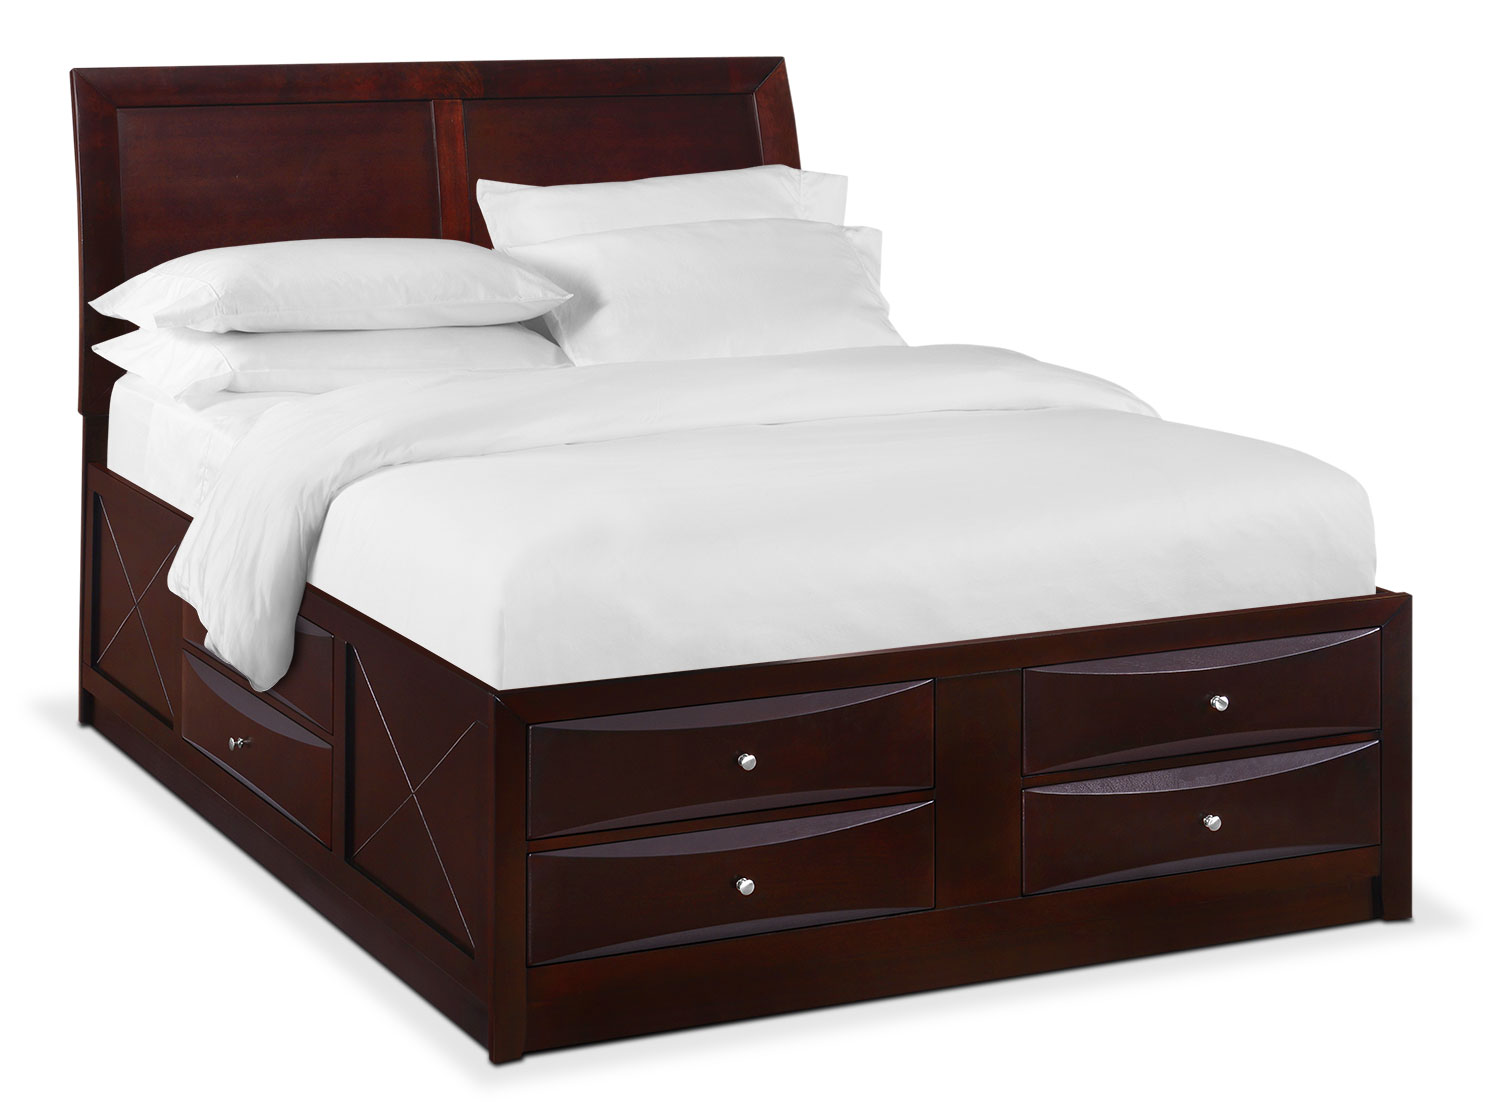 Bedroom Furniture - Braden Queen Storage Bed - Merlot